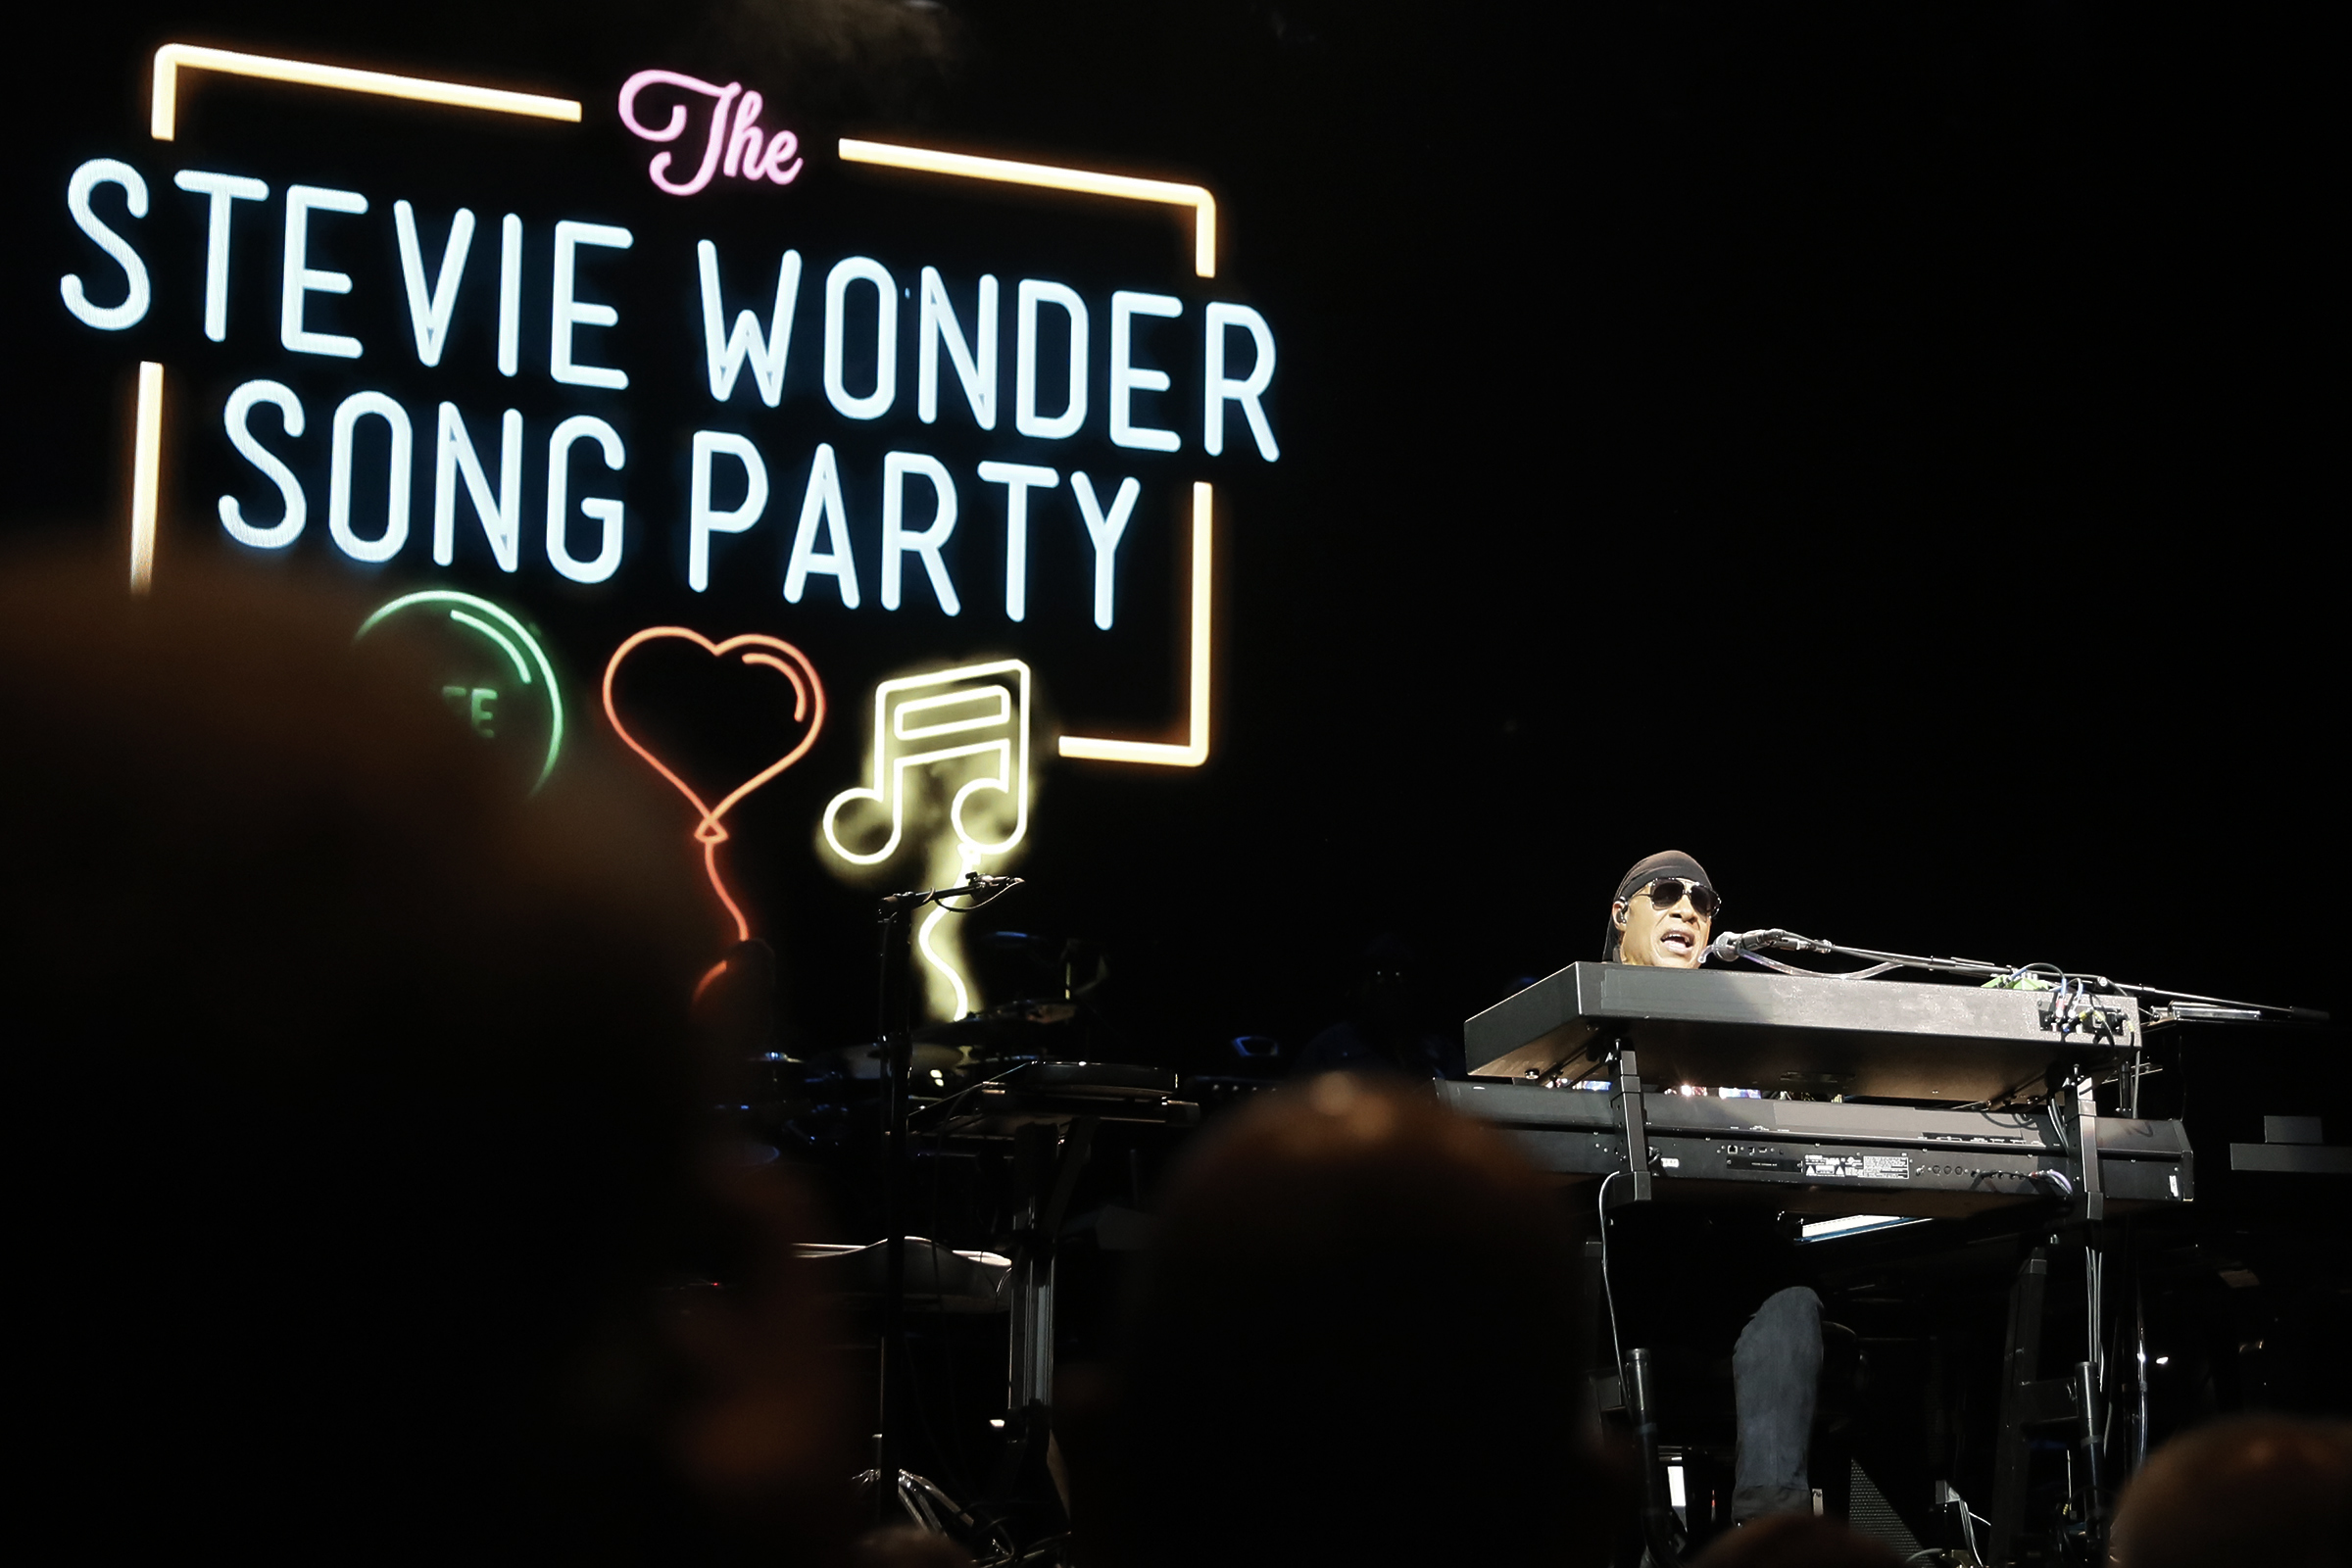 """Stevie Wonder performs during his """"Song Party"""" tour stop at the Borgata´s Casino in Atlantic City, NJ on Aug. 25, 2018. ELIZABETH ROBERTSON / Staff Photographer"""